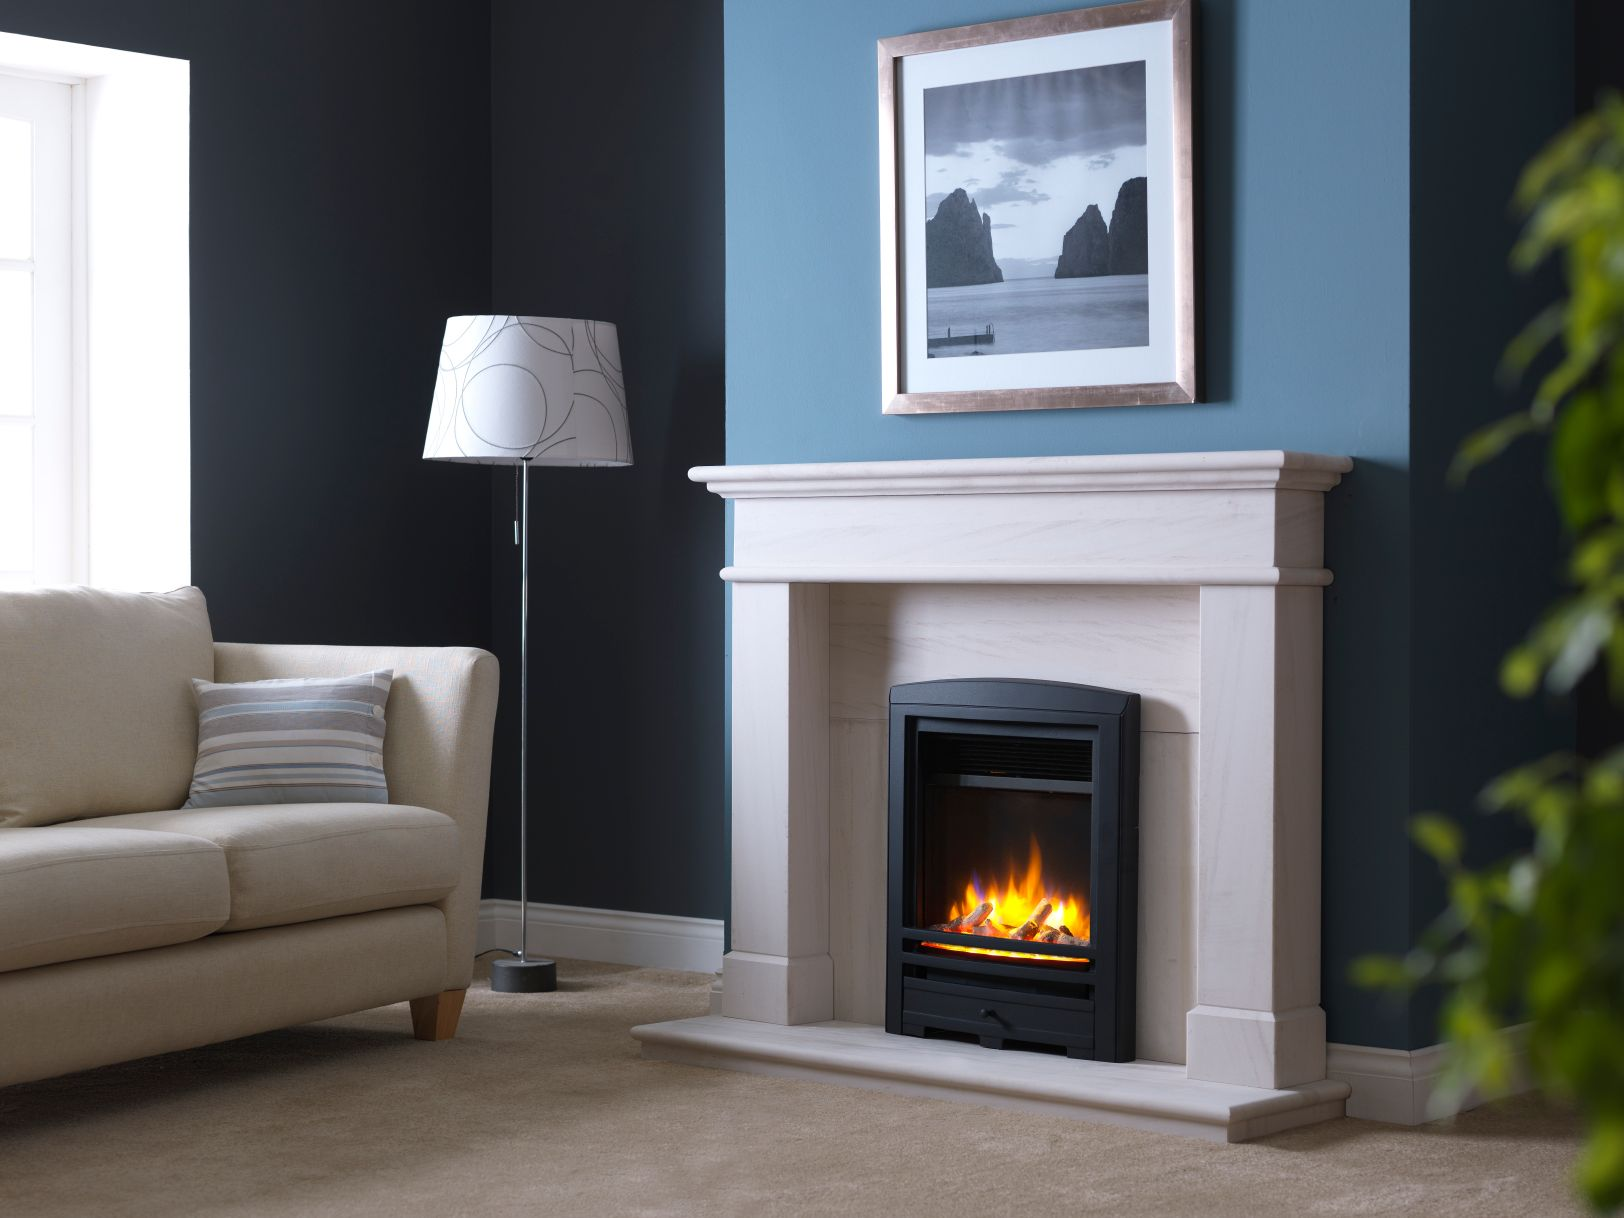 3D Ecoflame Electric Fire with Cast Iron Frame in Balmoral Fireplace Suite